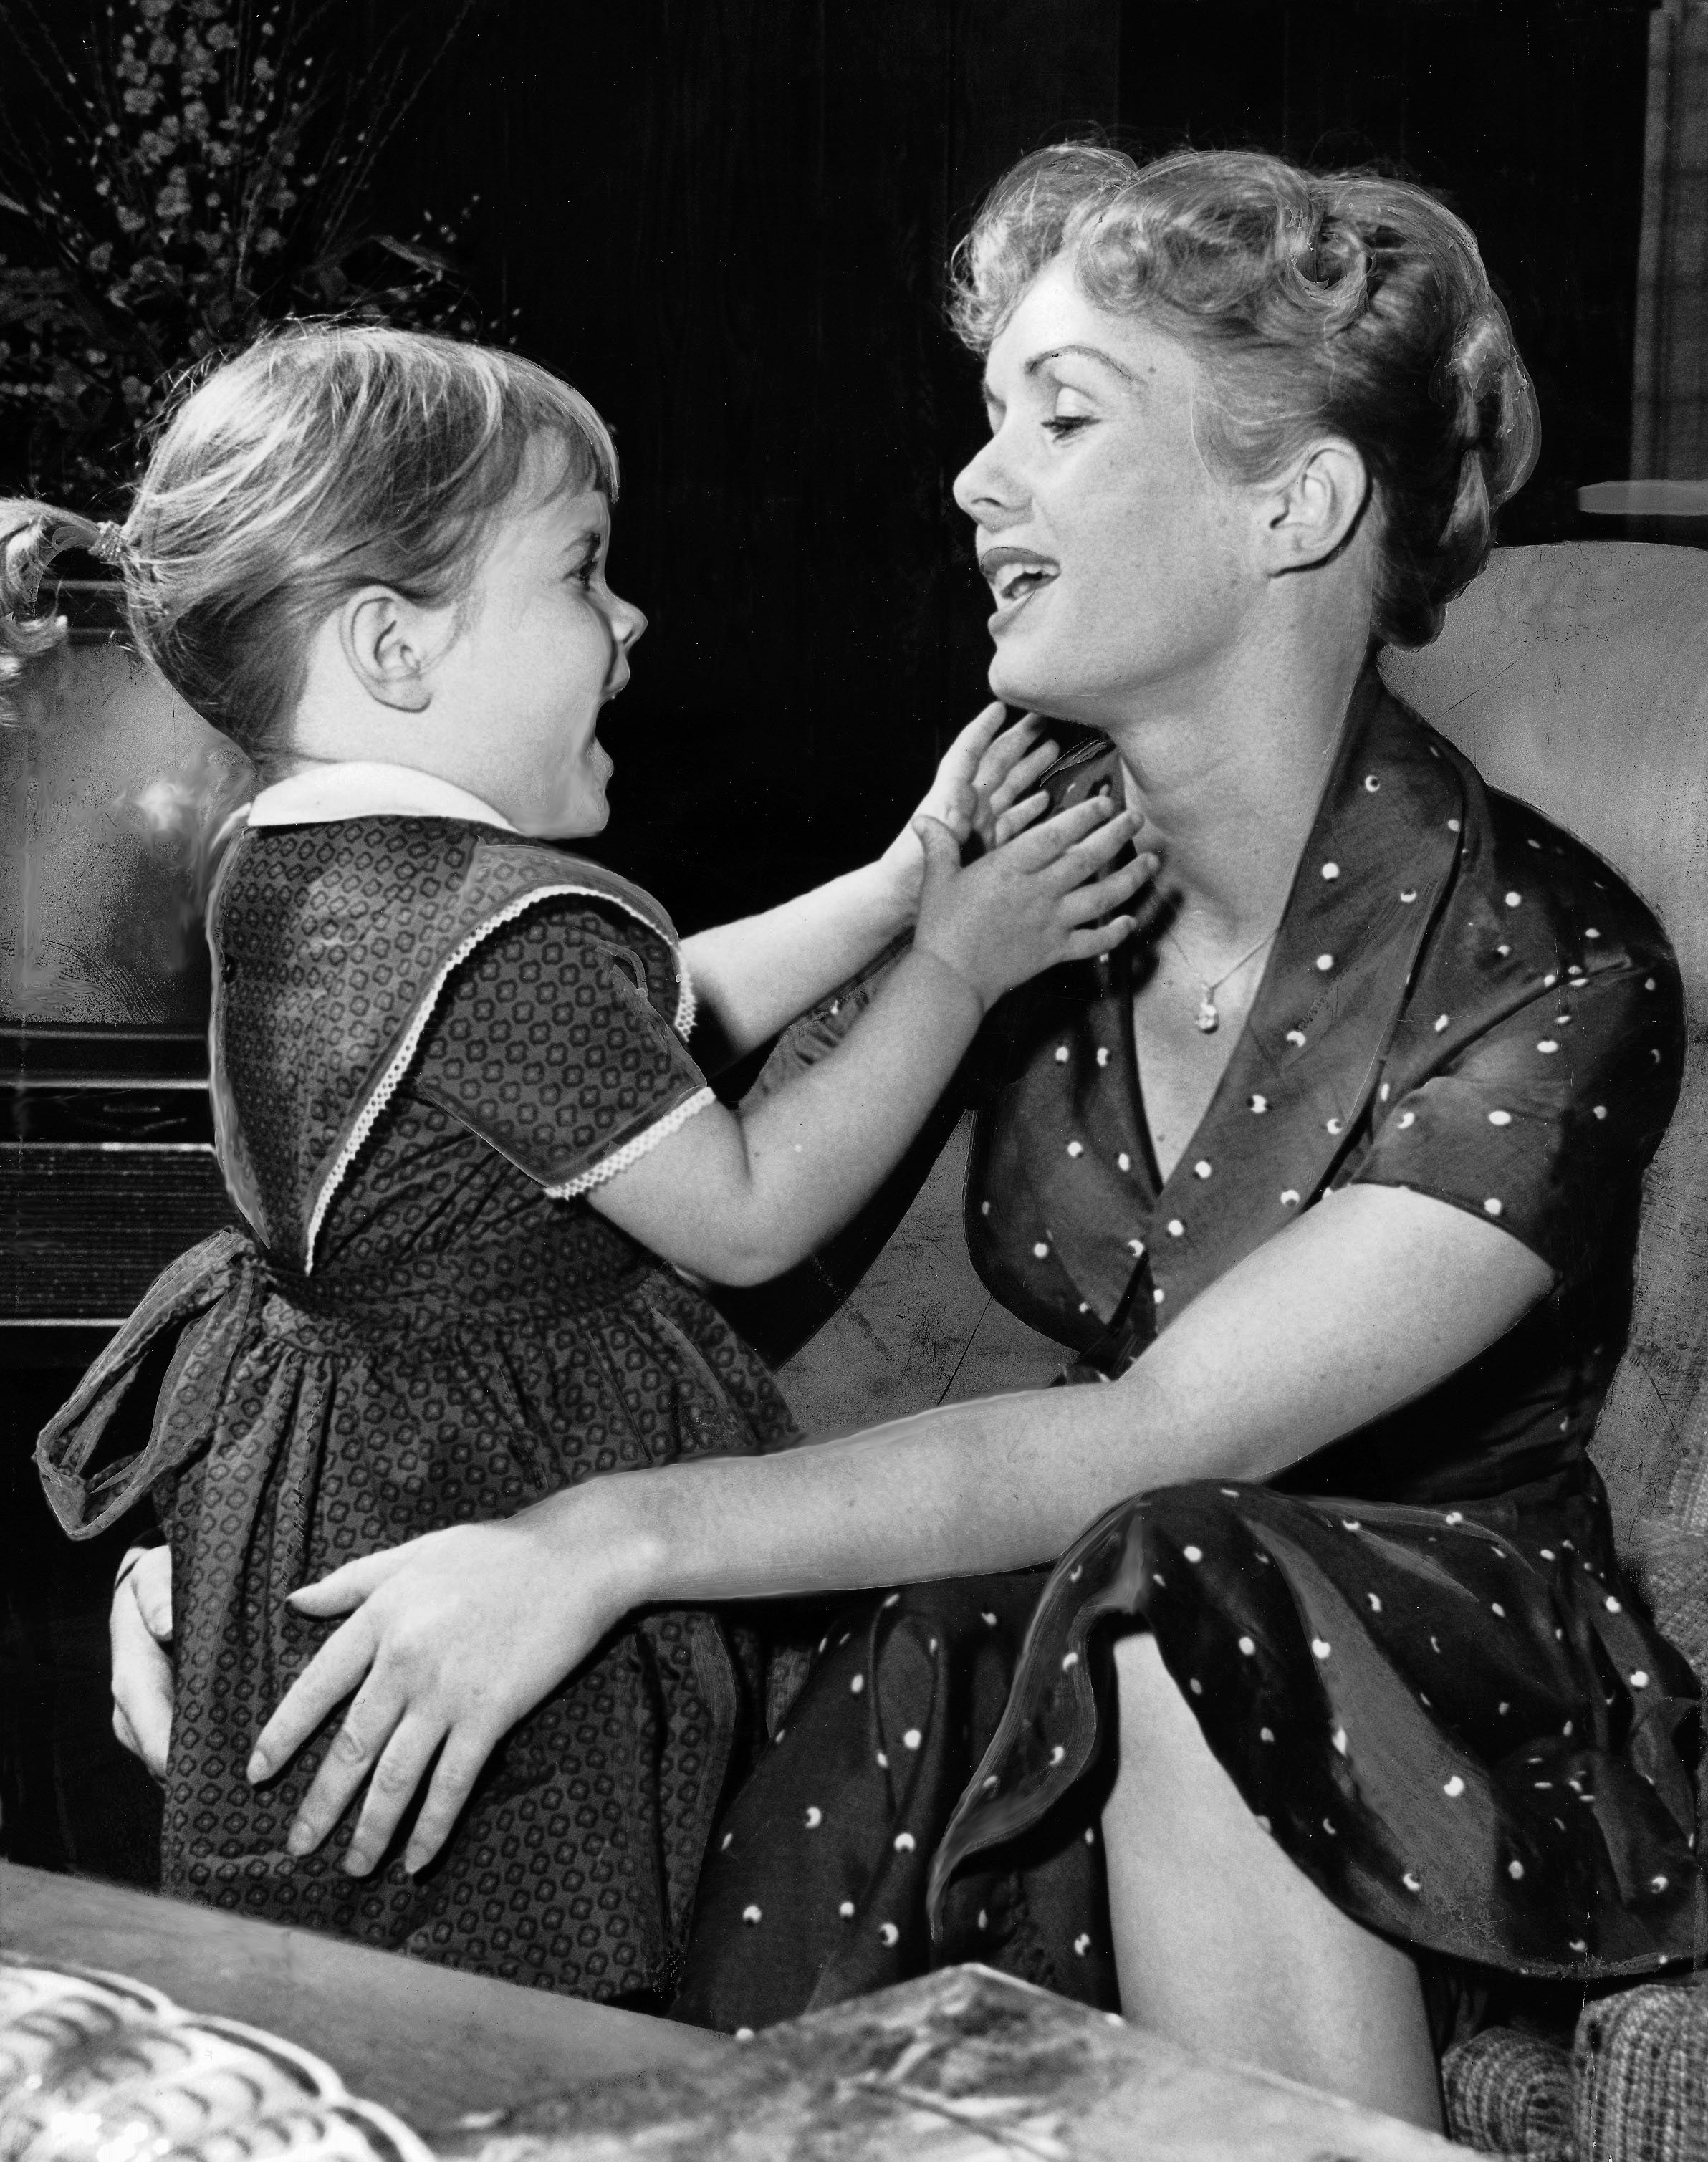 LOS ANGELES, CA - NOVEMBER 16: (FILE PHOTO) Carrie Fisher, 3, gives her mother Debbie Reynolds a hug after her afternoon nap in their home November 16, 1959 in West Los Angeles, California. (Photo by Ray Graham/Los Angeles Times via Getty Images) .